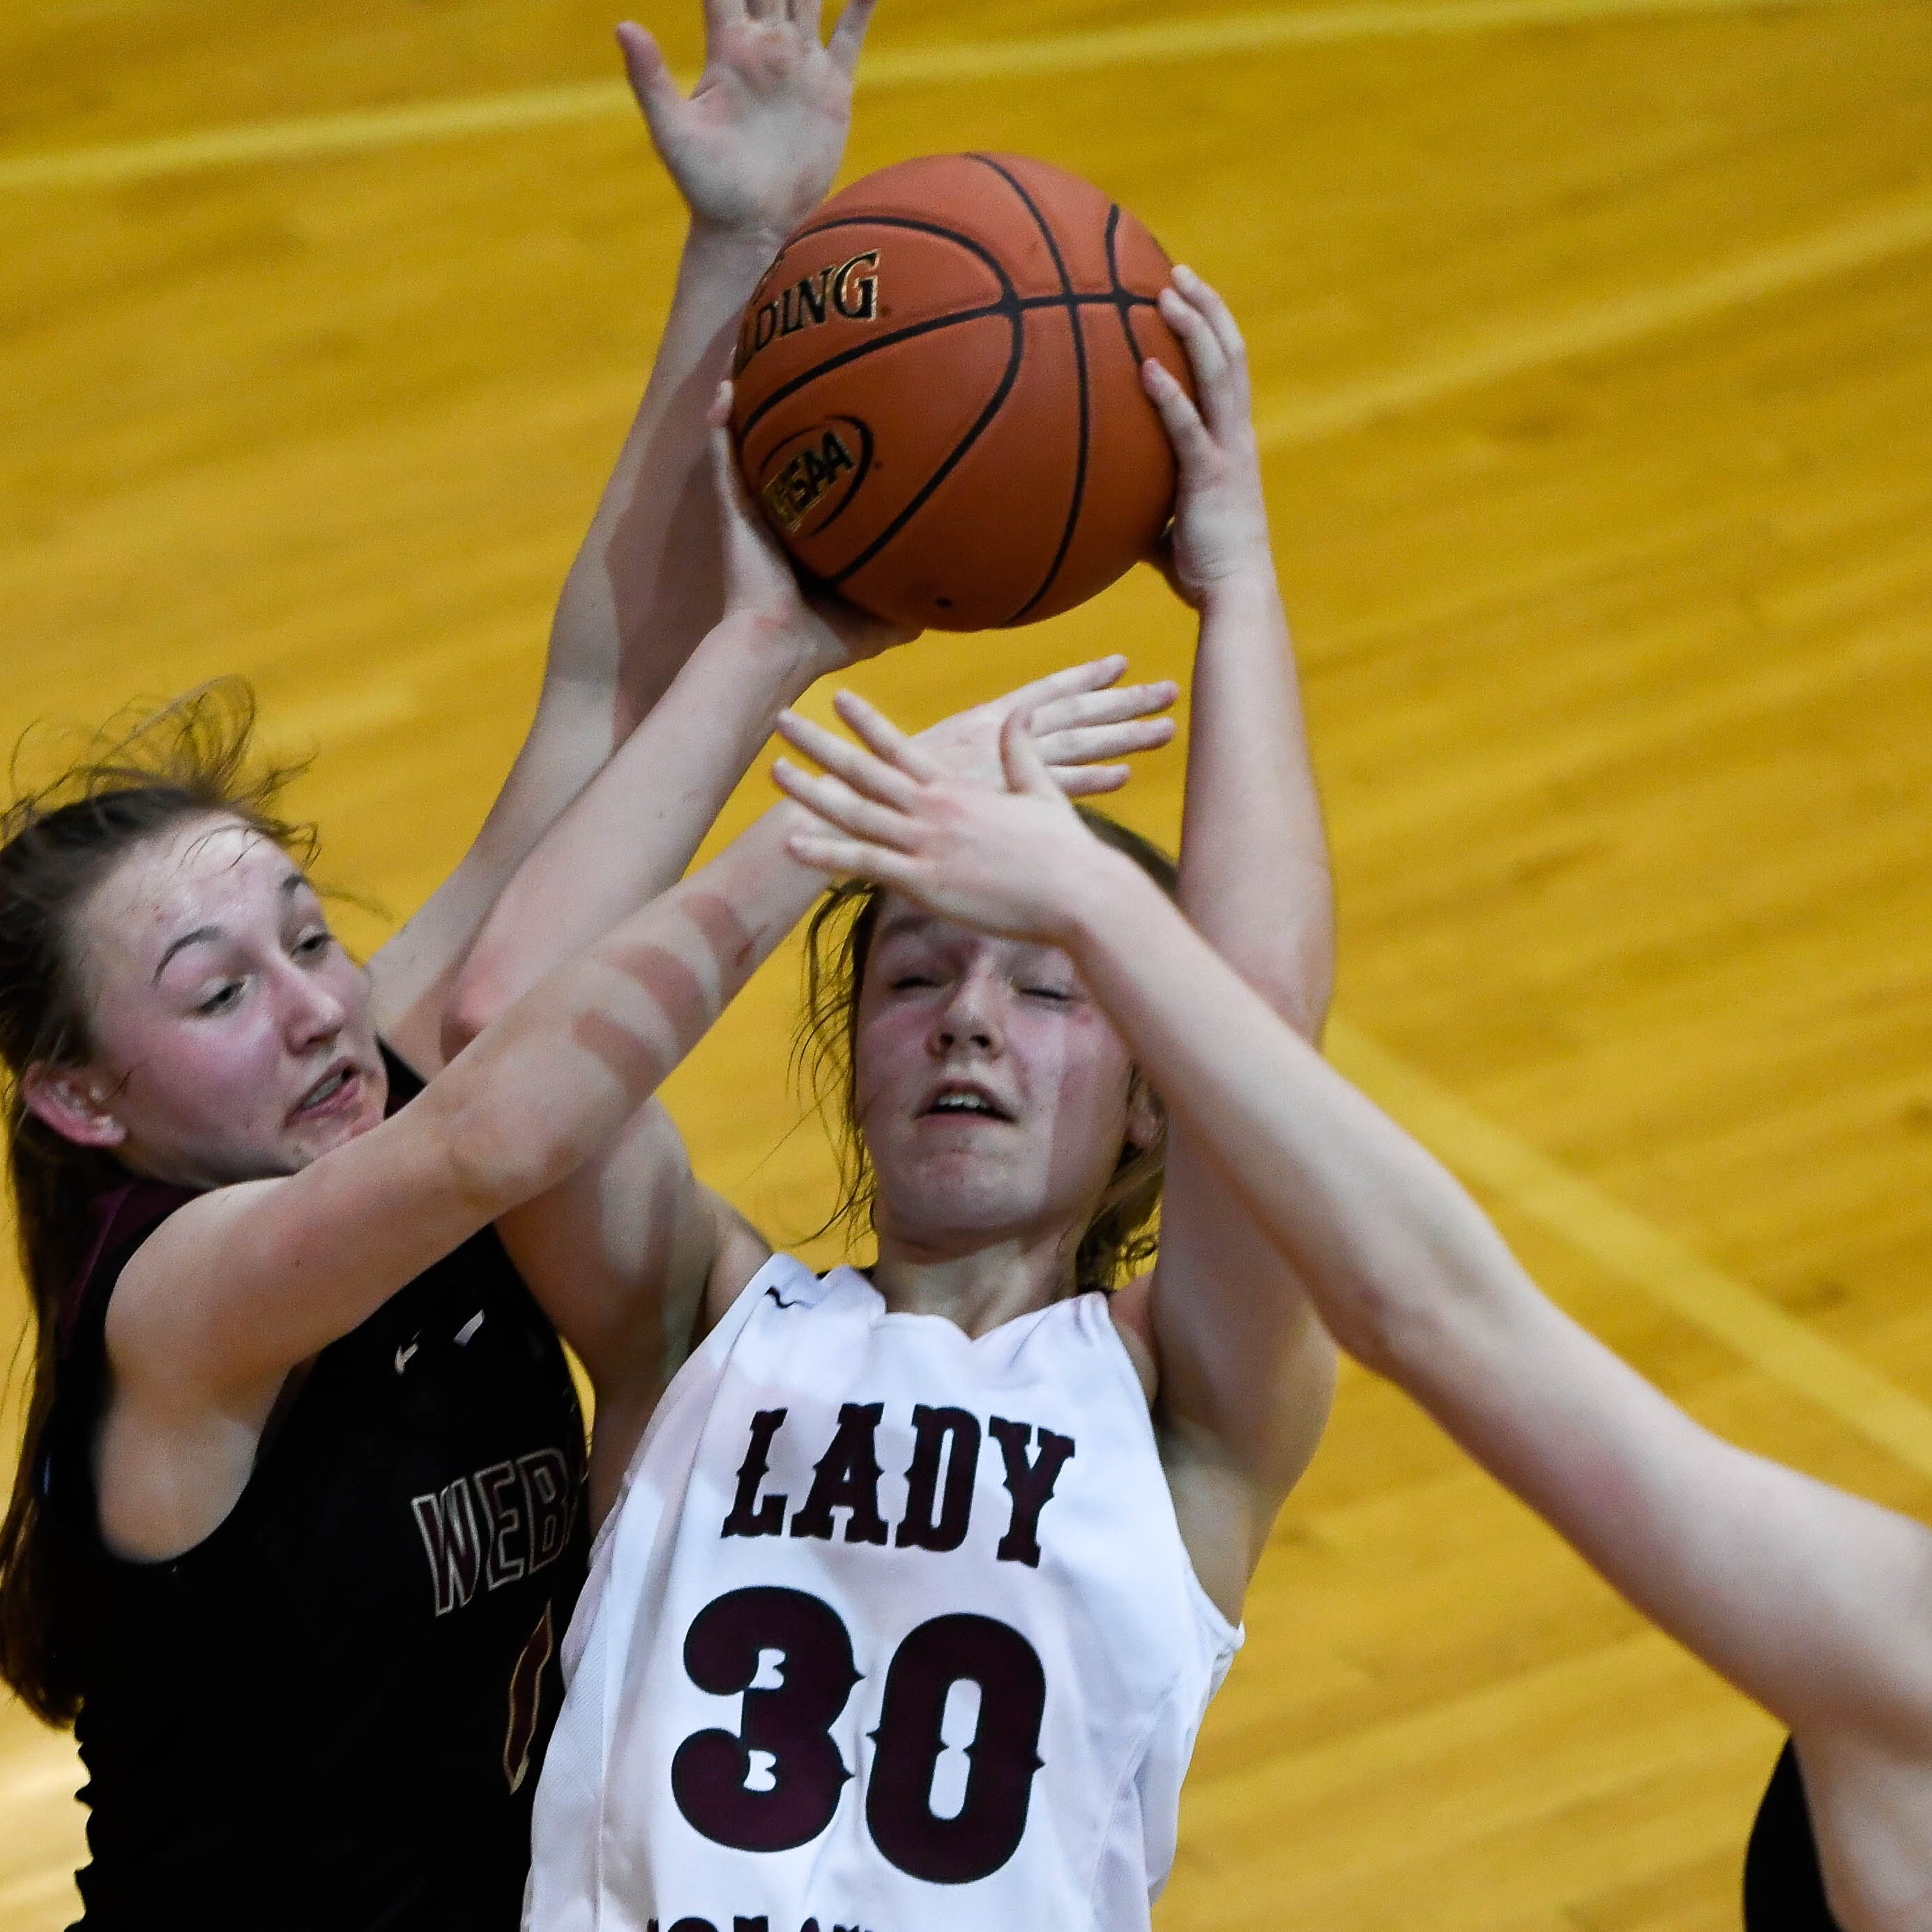 Henderson County's Emilee Hope has become more than a 3-point threat